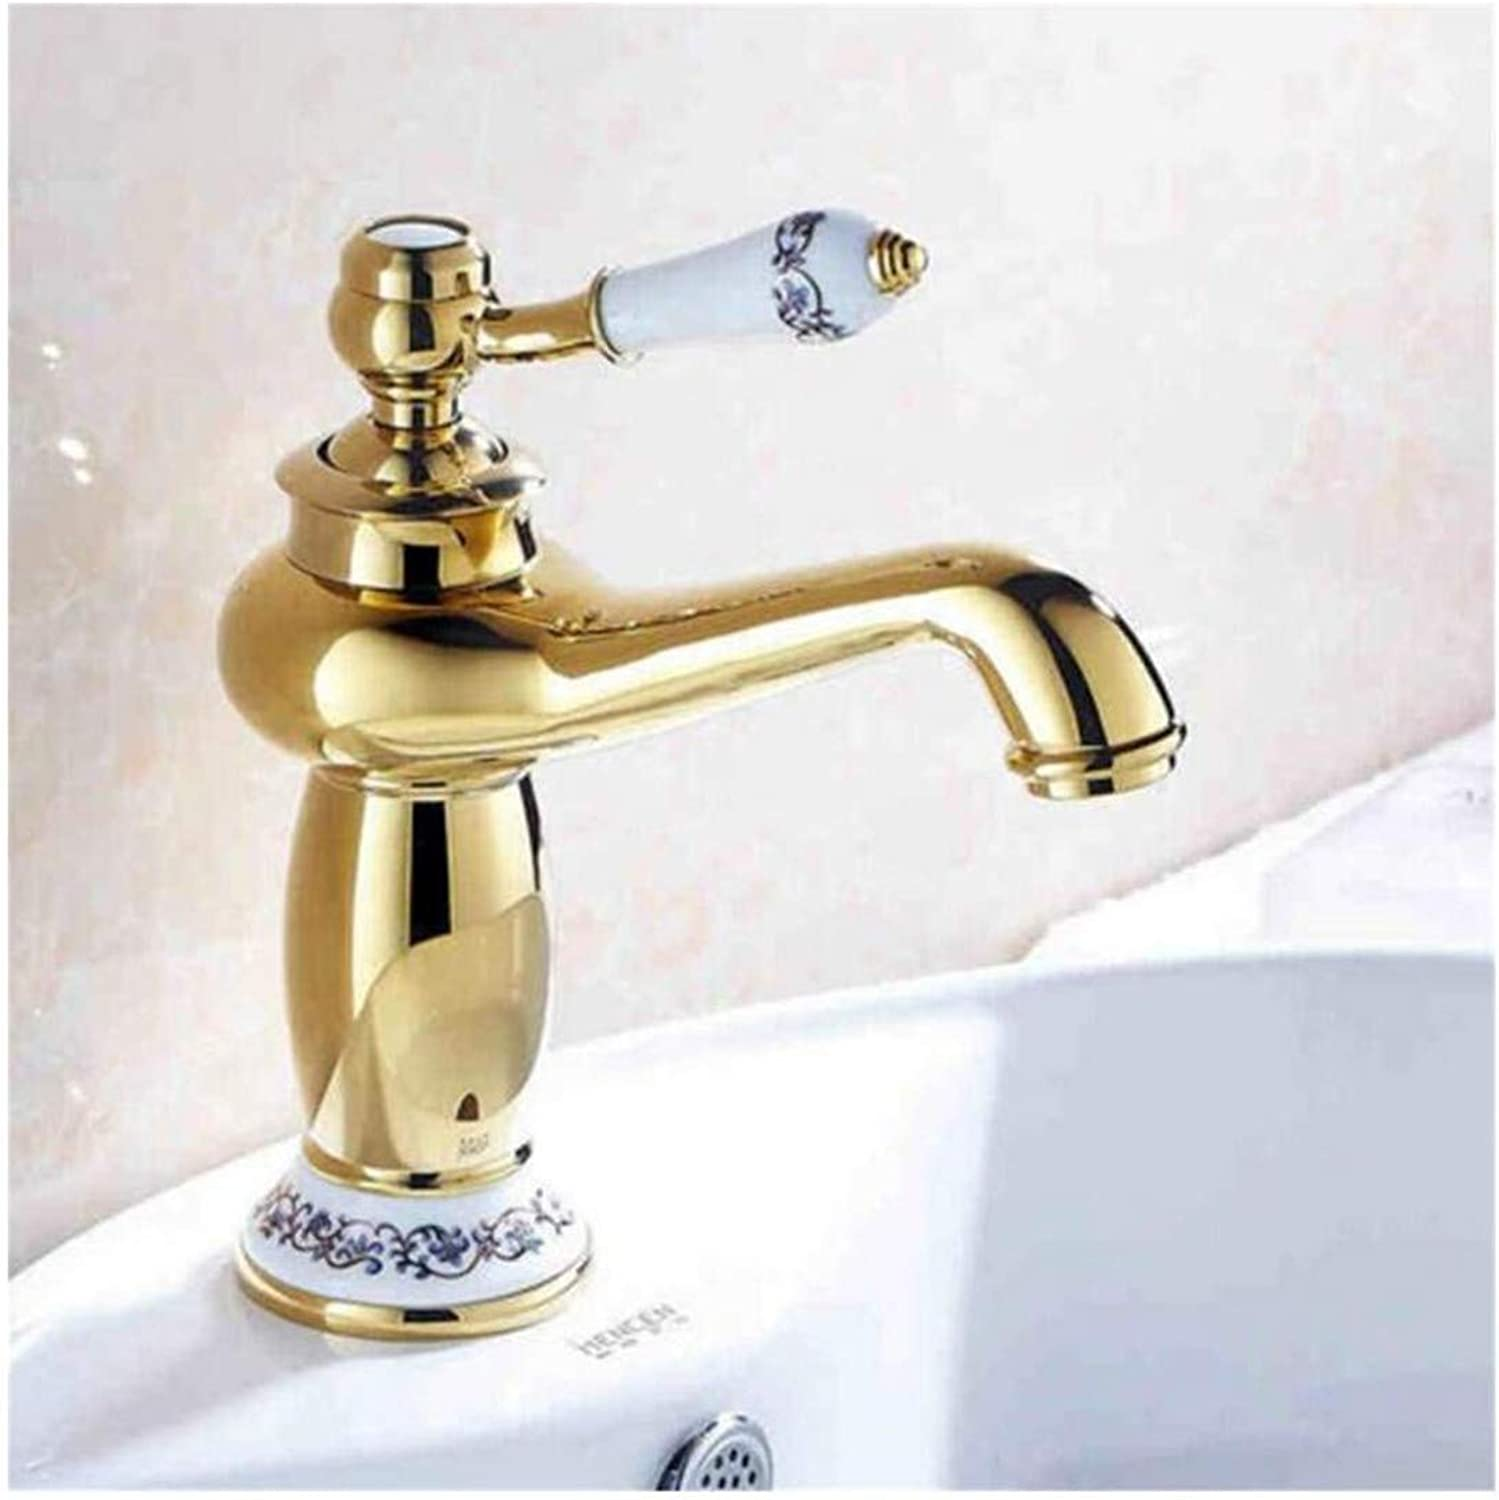 Kitchen Bath Basin Sink Bathroom Taps Washbasin Mixer Bathroom Sink Faucet Ctzl1559